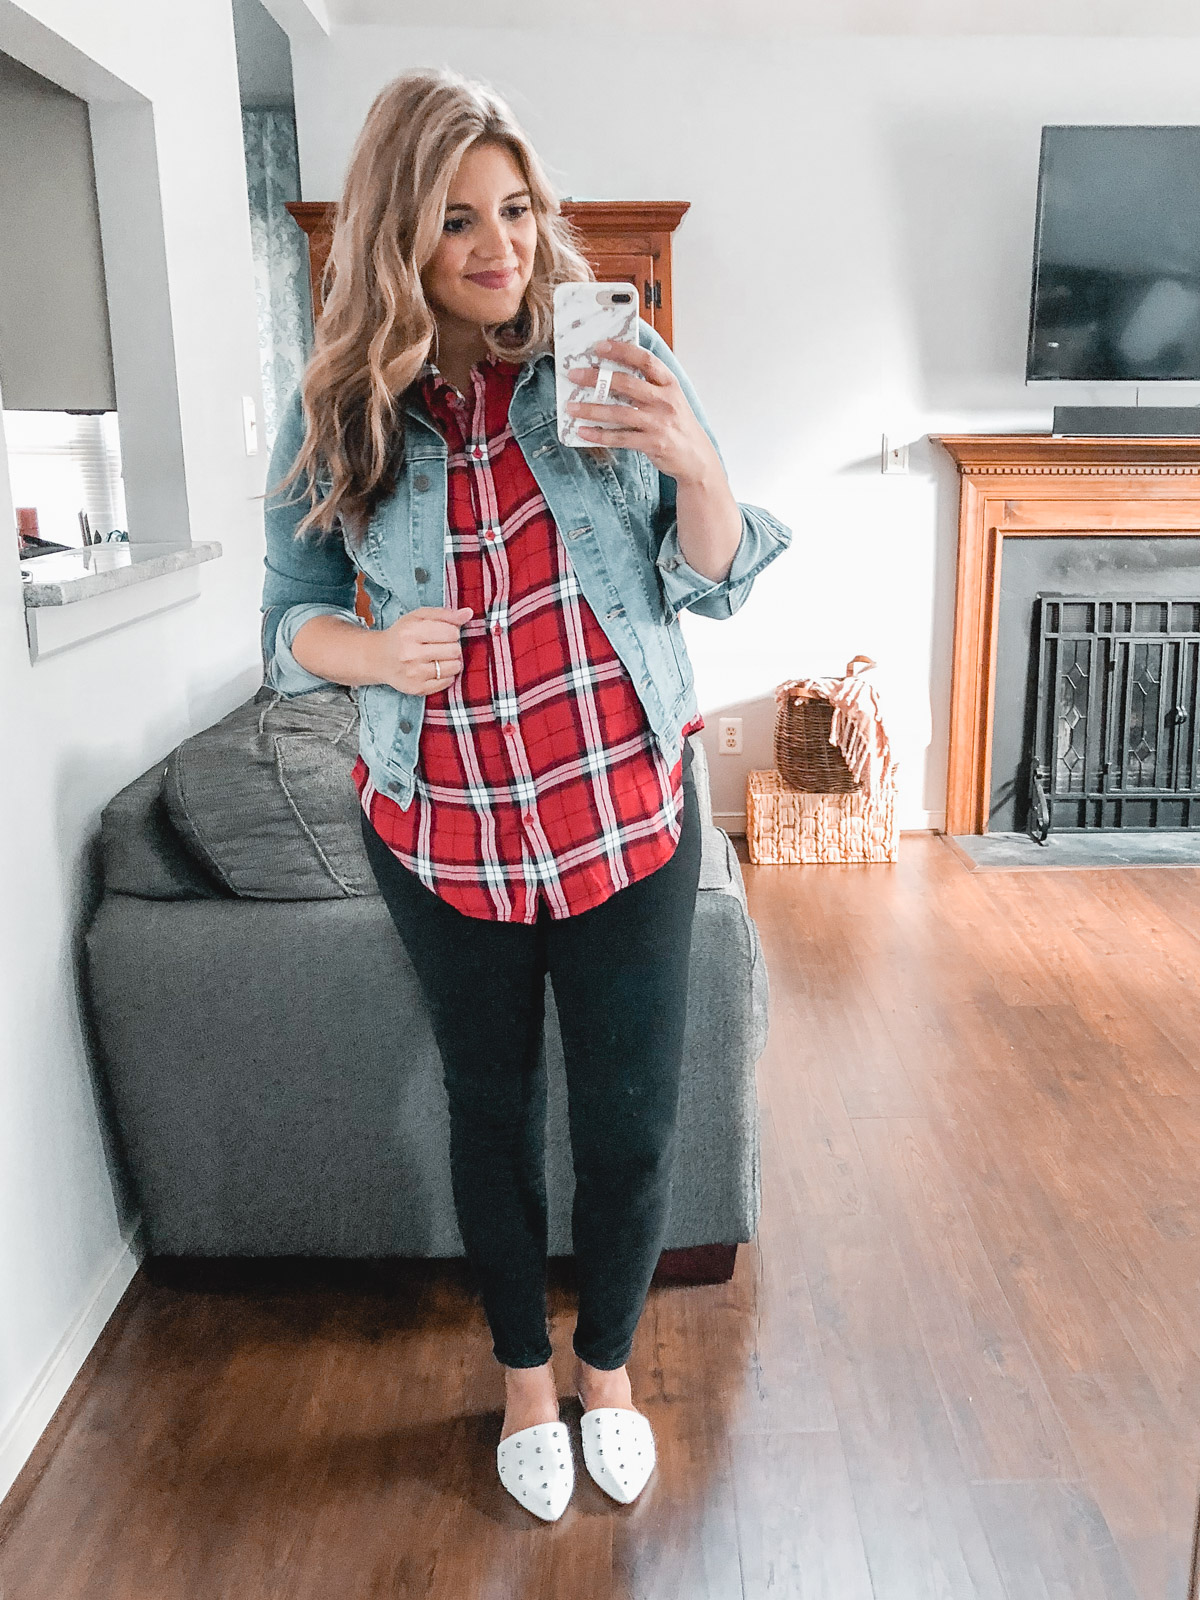 casual plaid top outfit - denim jacket and plaid top | Need plaid top outfit ideas? I'm sharing one $31 plaid top styled 15 different ways on bylaurenm.com!